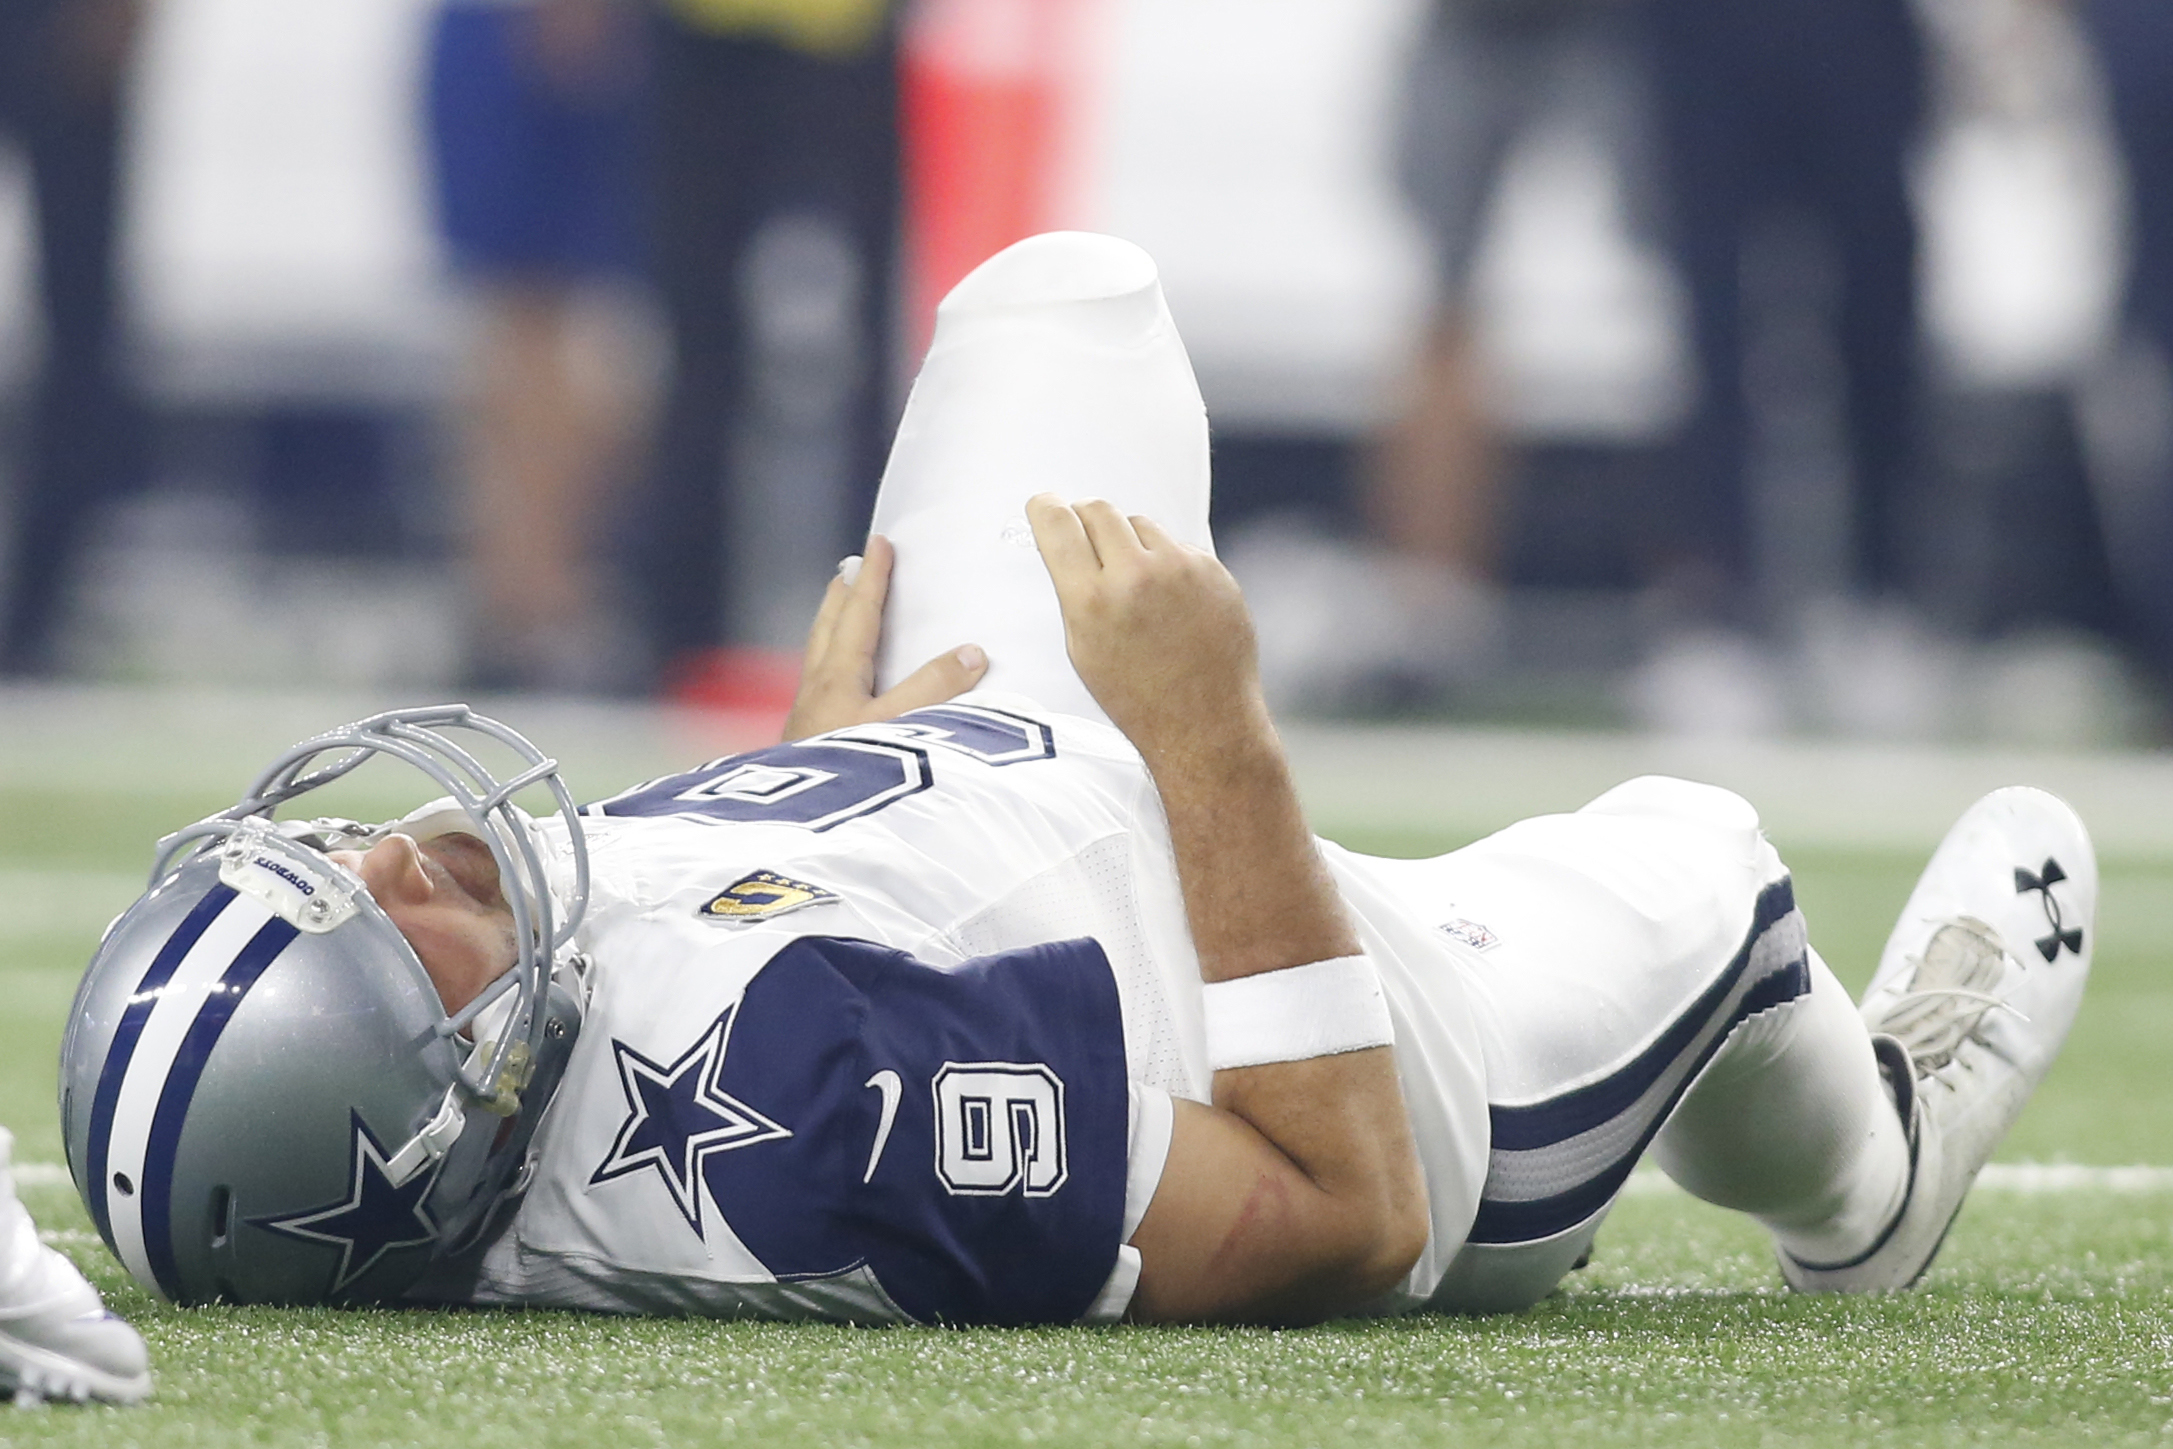 Tony Romo after being injured Thursday